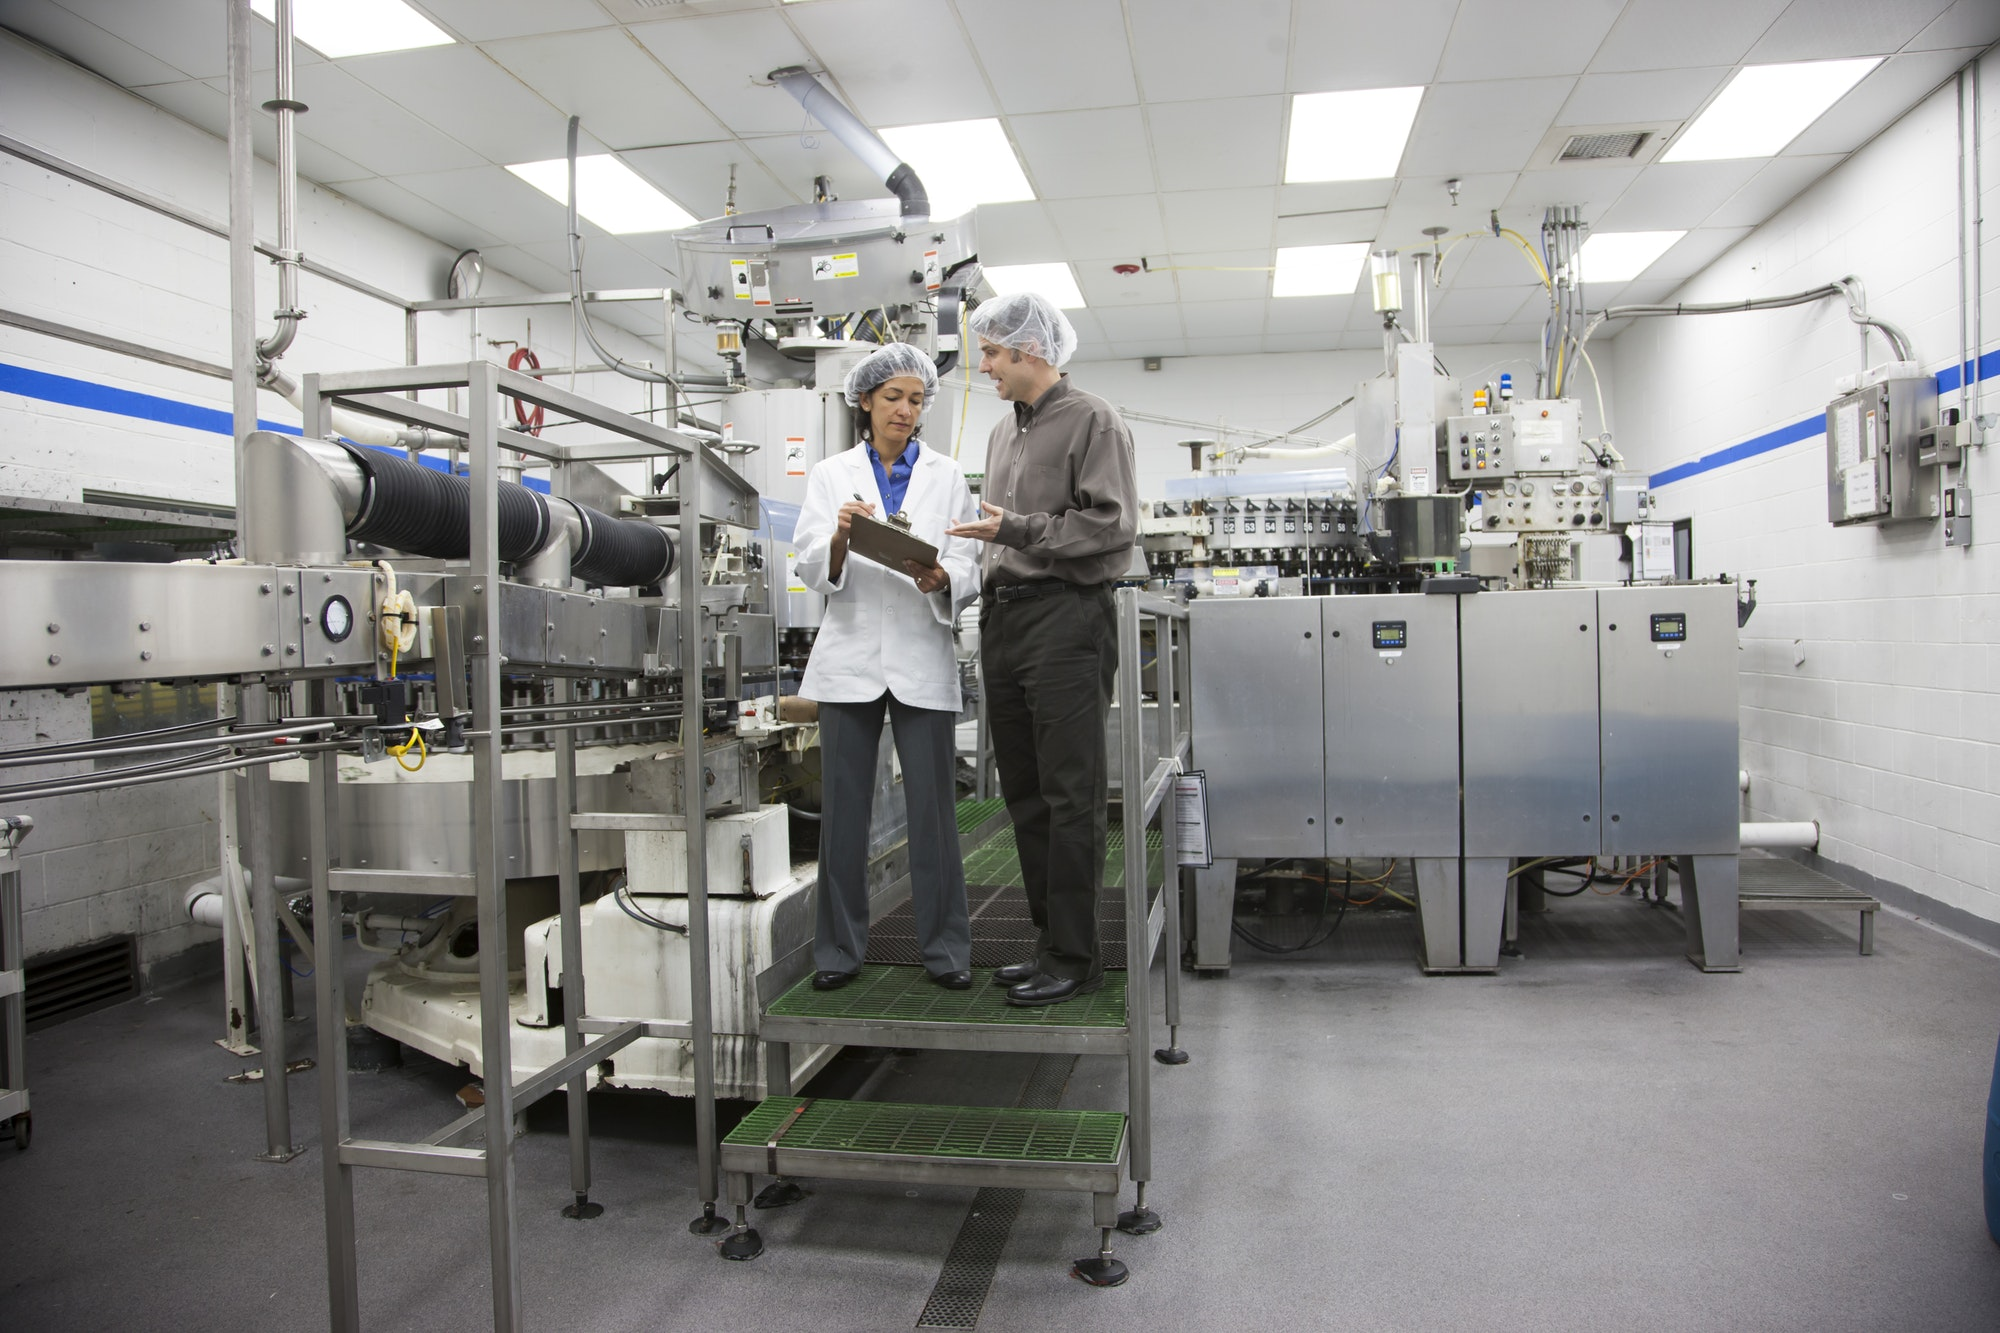 A discussion between a management person and a technician in a bottled water plant.